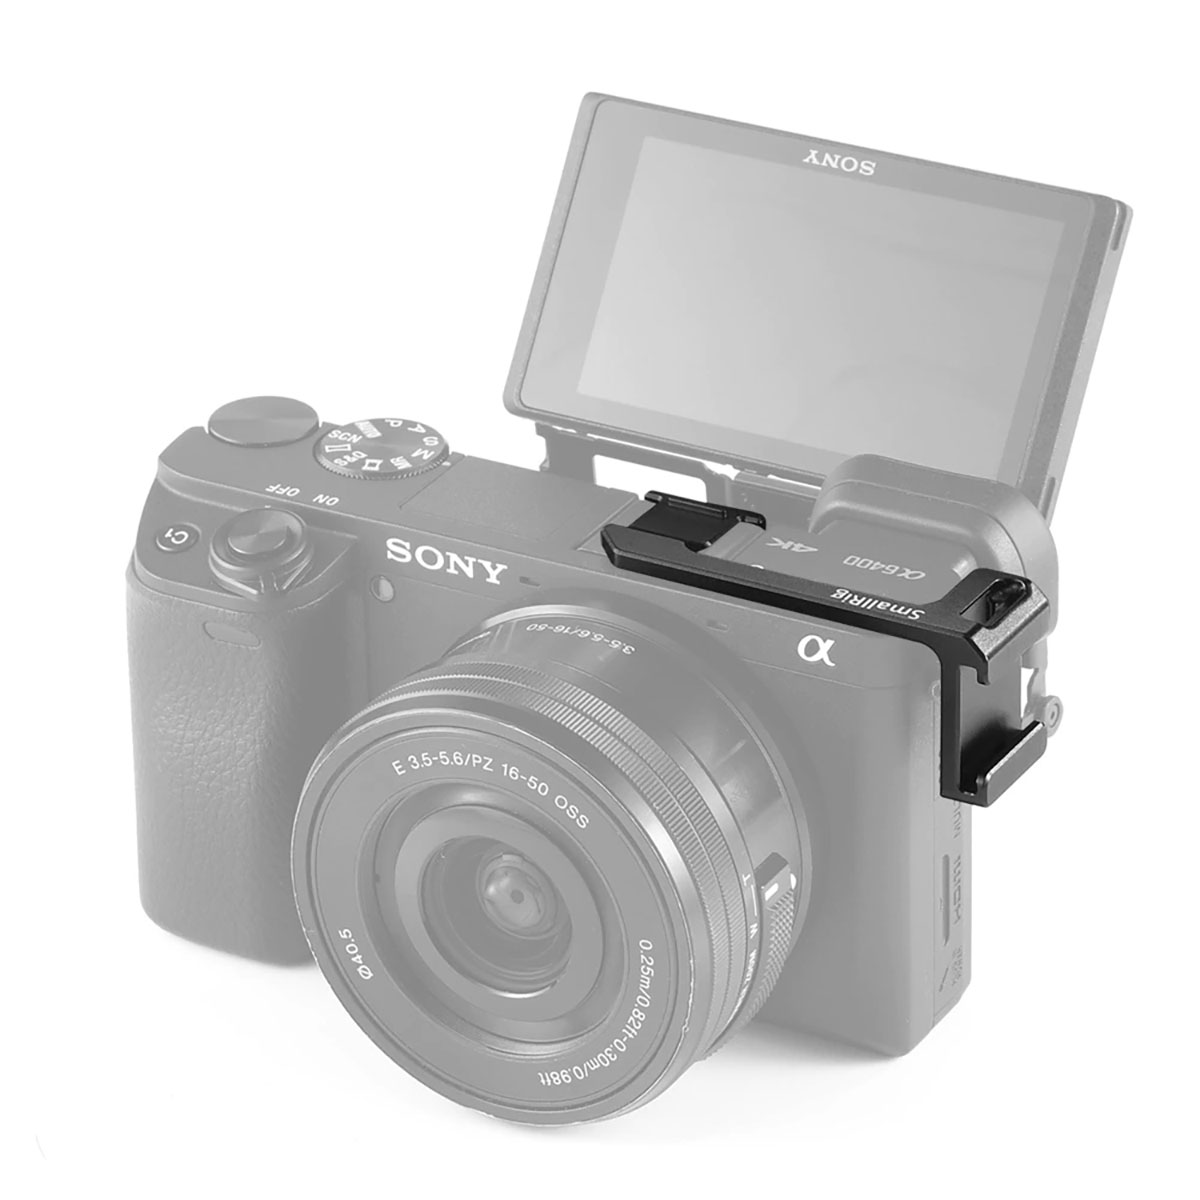 SmallRig Cold Shoe Adapter (links) für Sony A 6000 / A 6300 / A 6400 / A 6500 2342